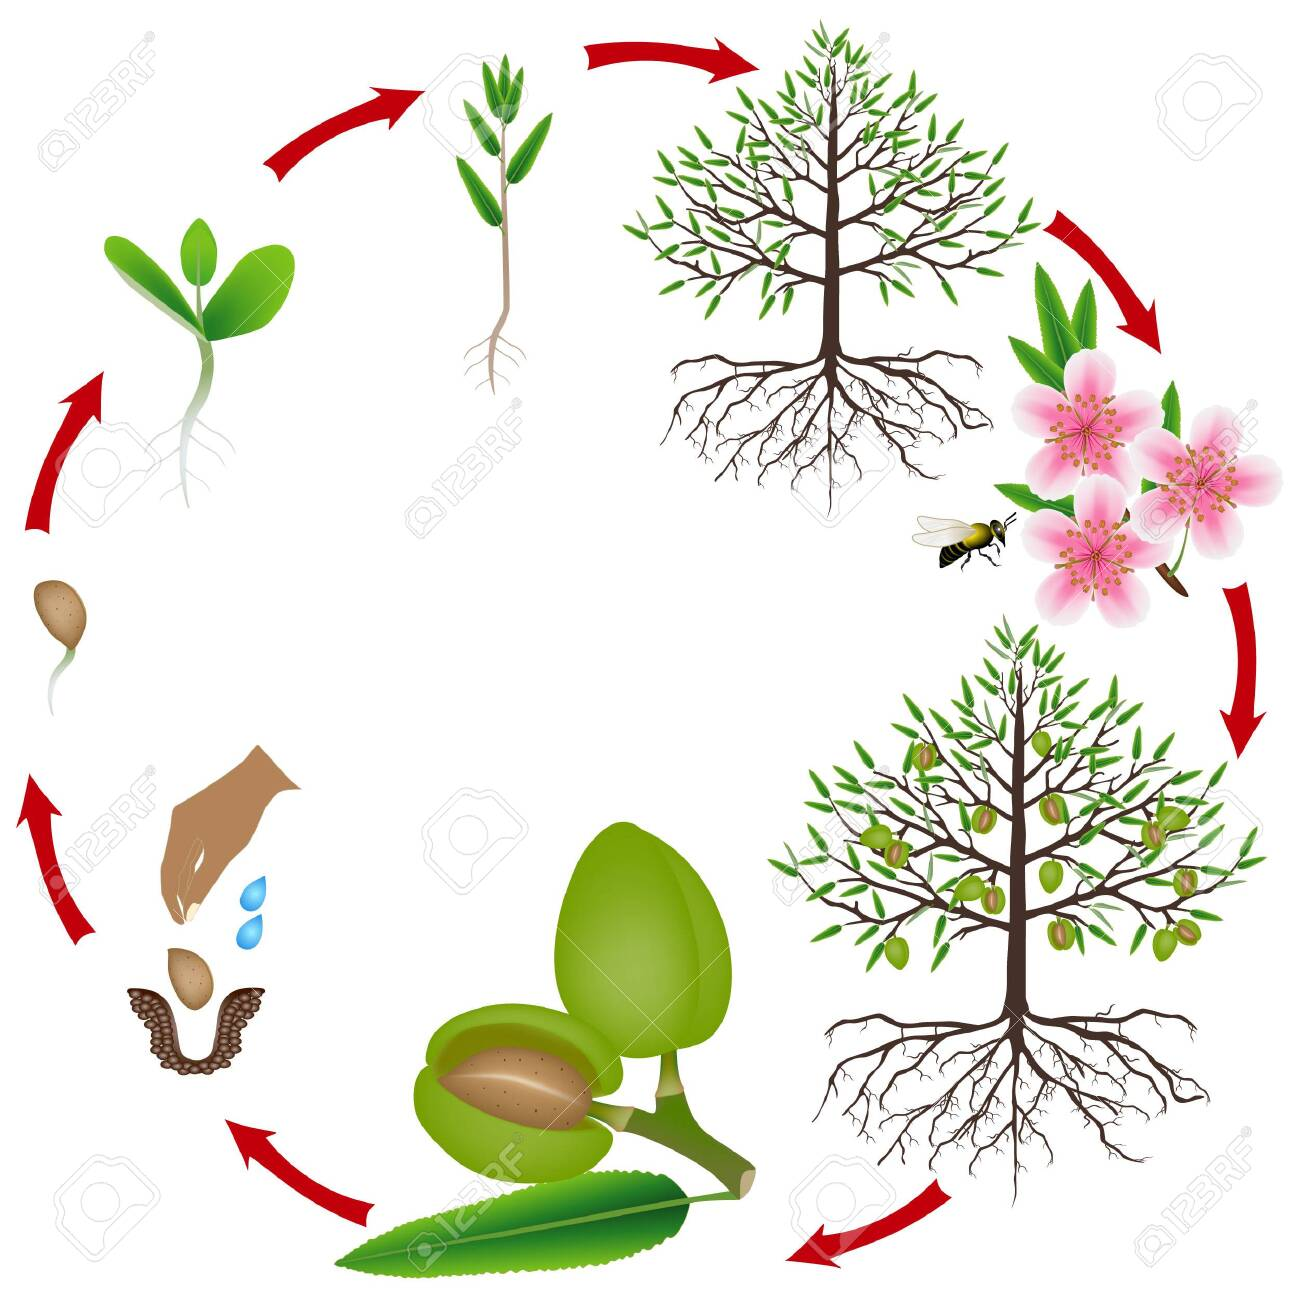 Life Cycle Of An Almond Tree On A White Background Royalty Free Cliparts Vectors And Stock Illustration Image 148206264